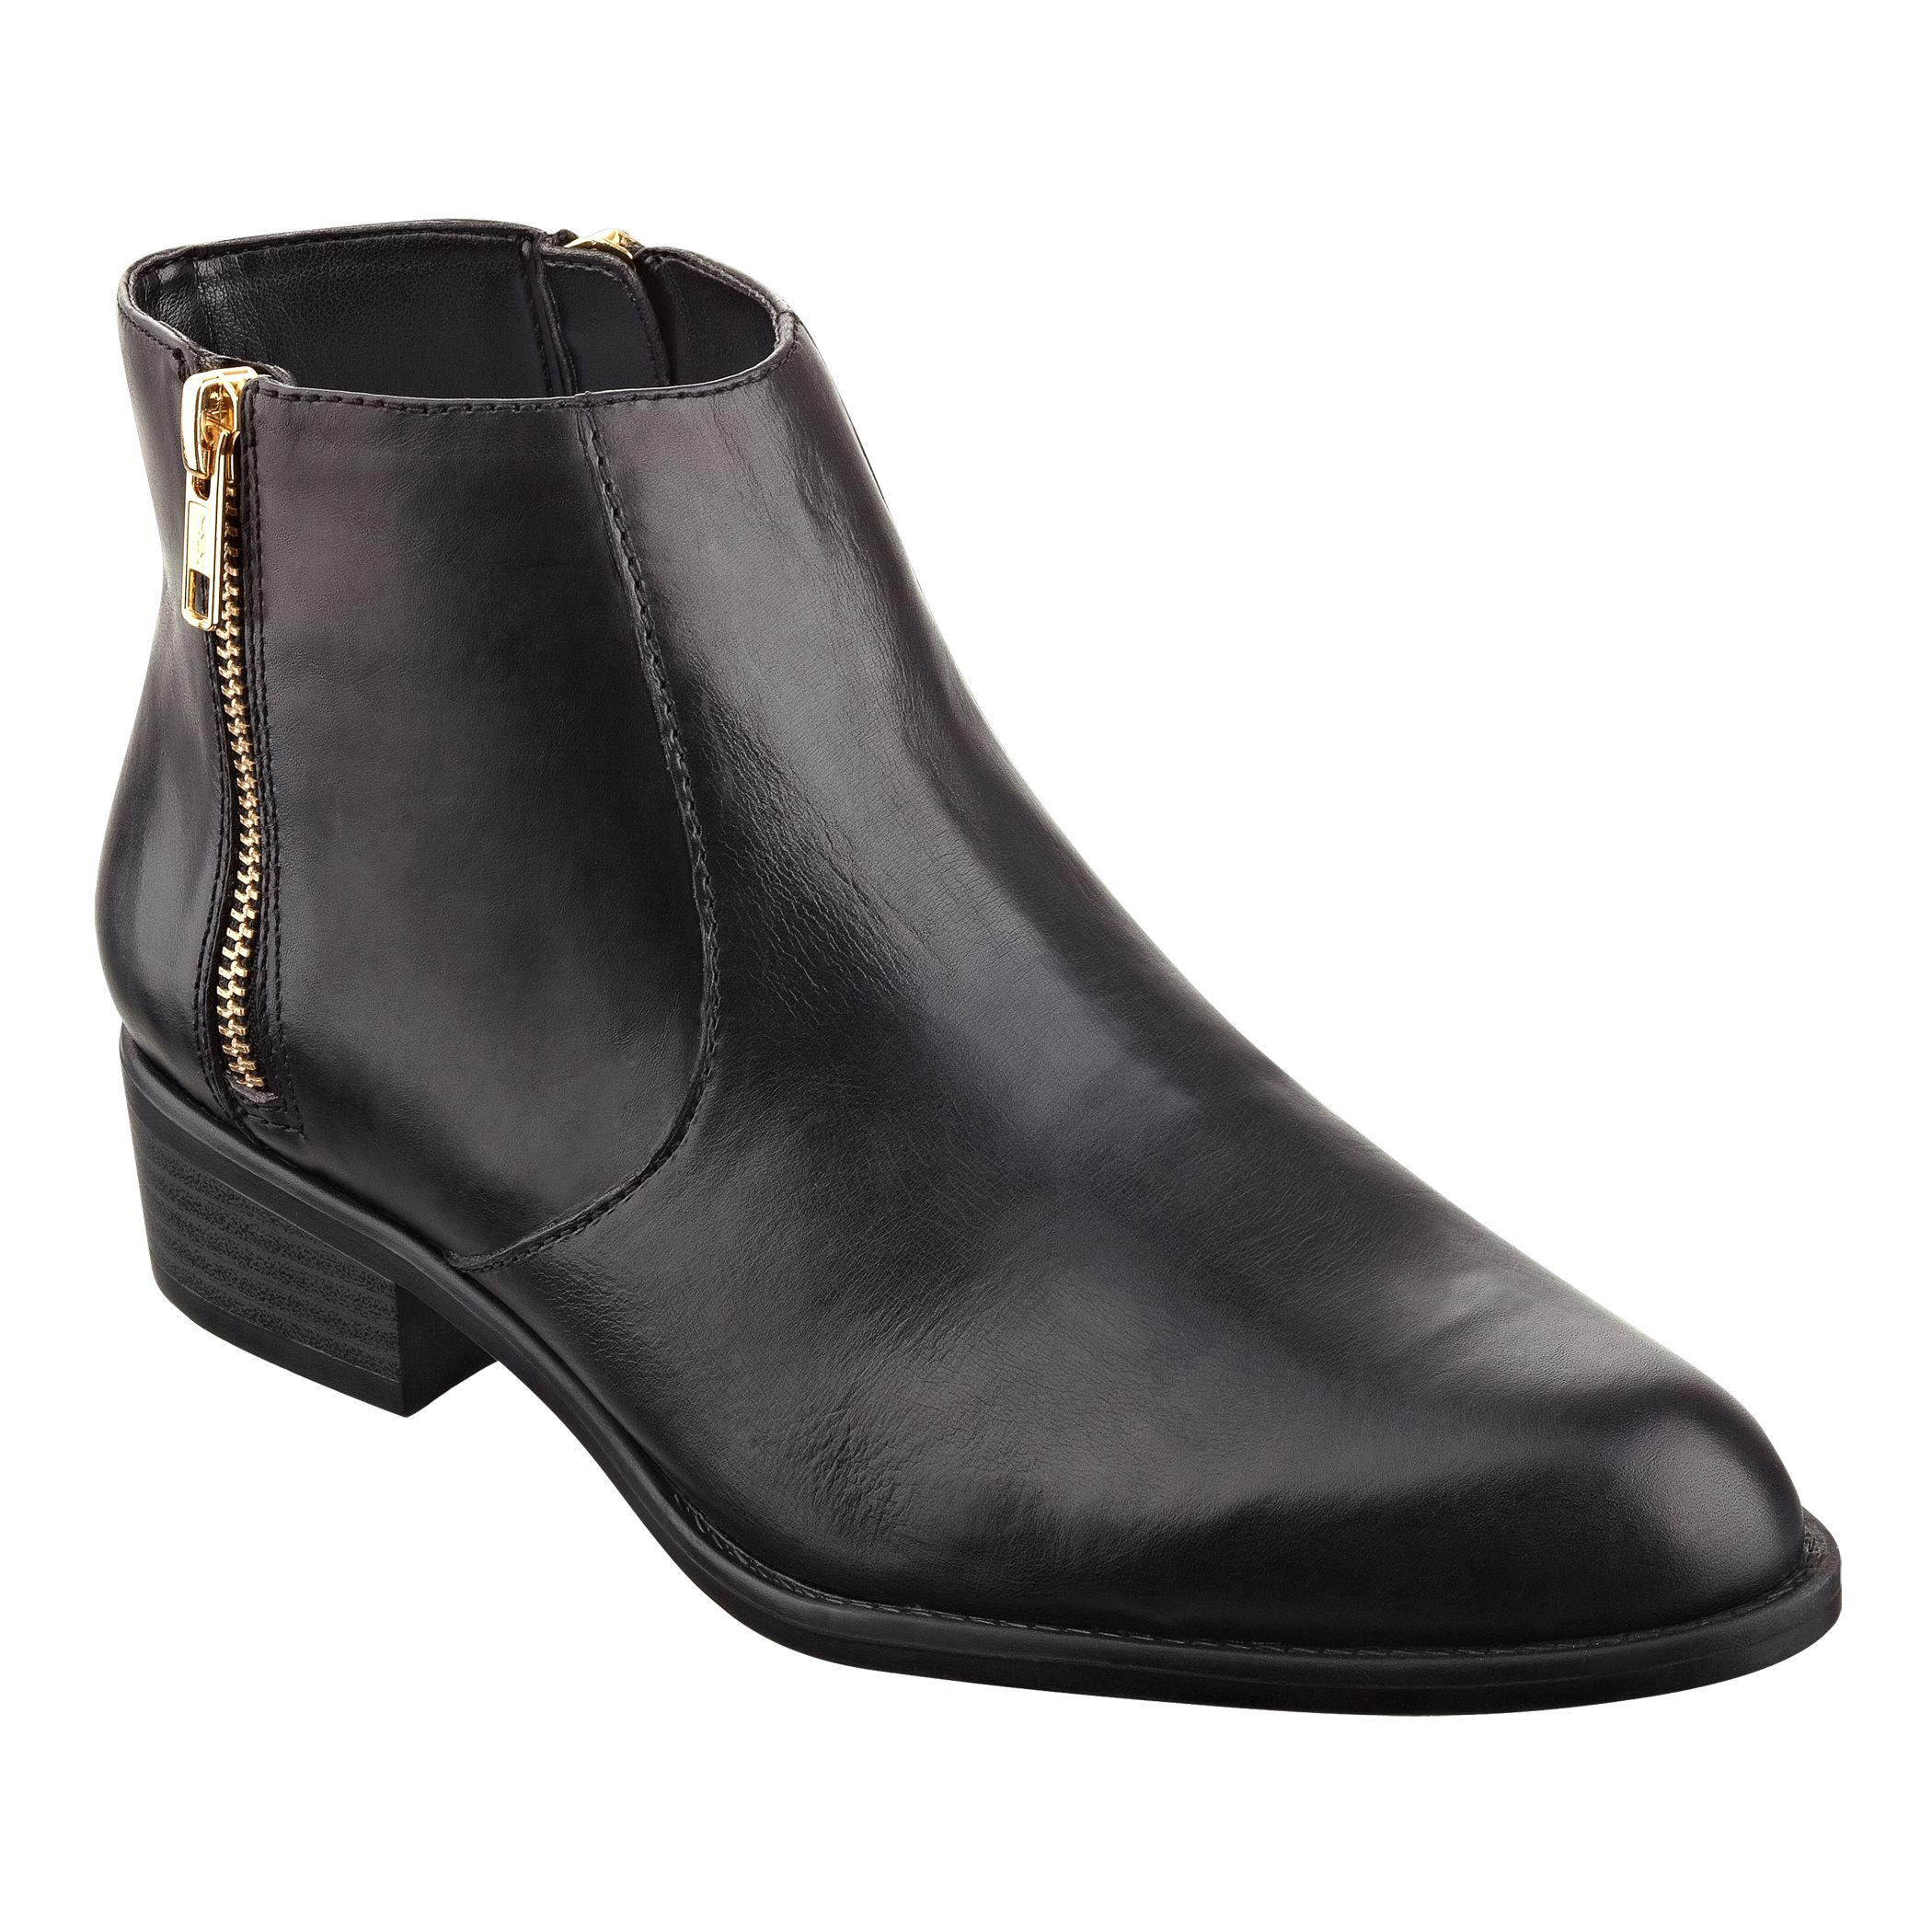 Booties to Buy Now recommendations